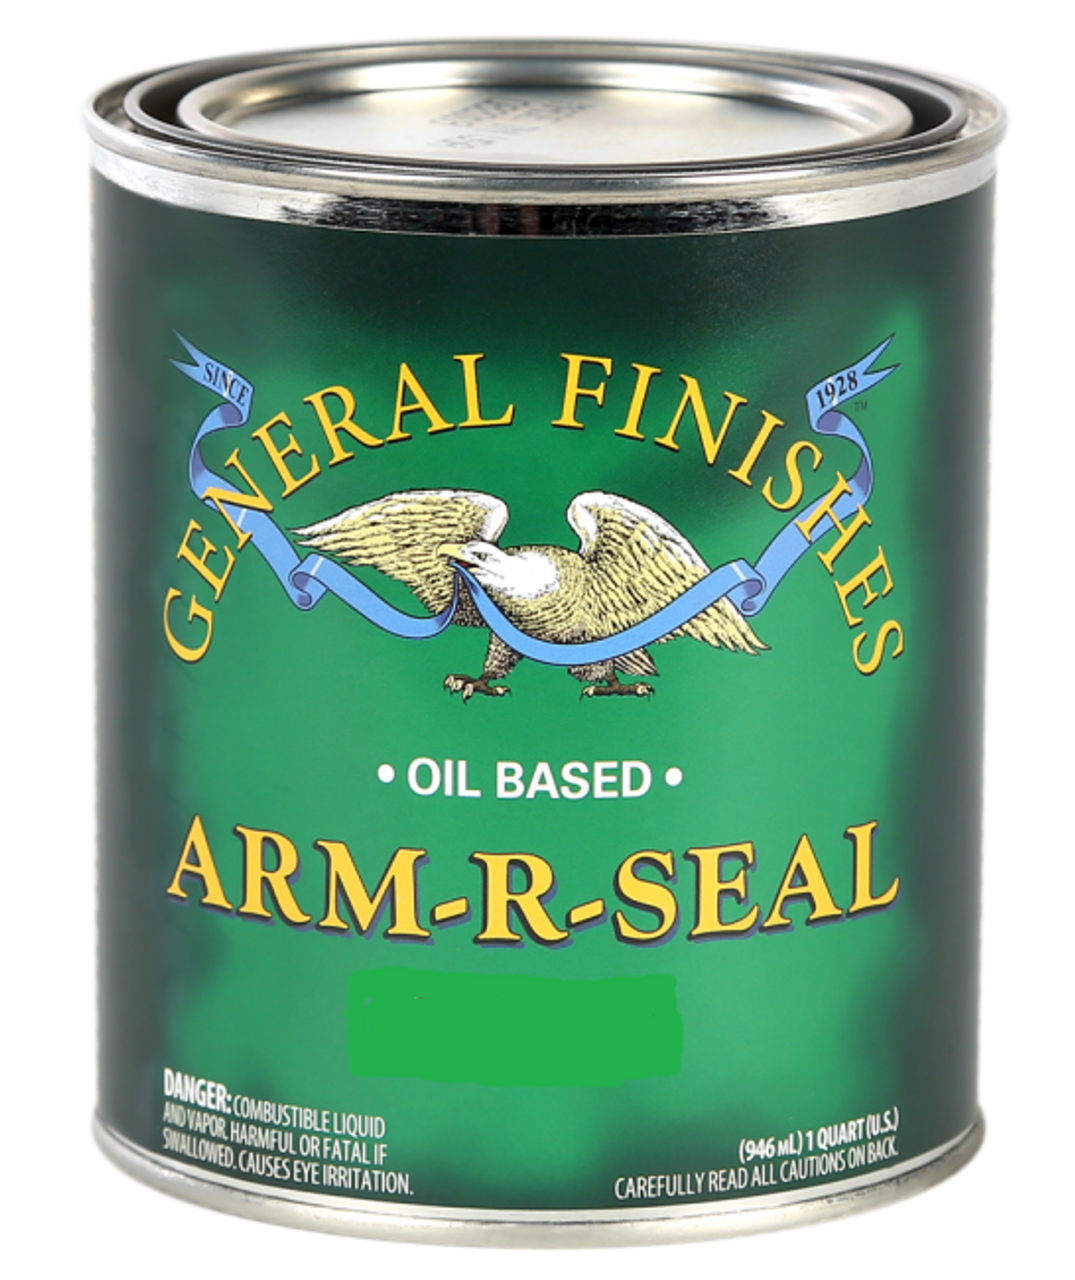 General Finishes - ARM-R-SEAL - GLOSS - PINT (606016104079)